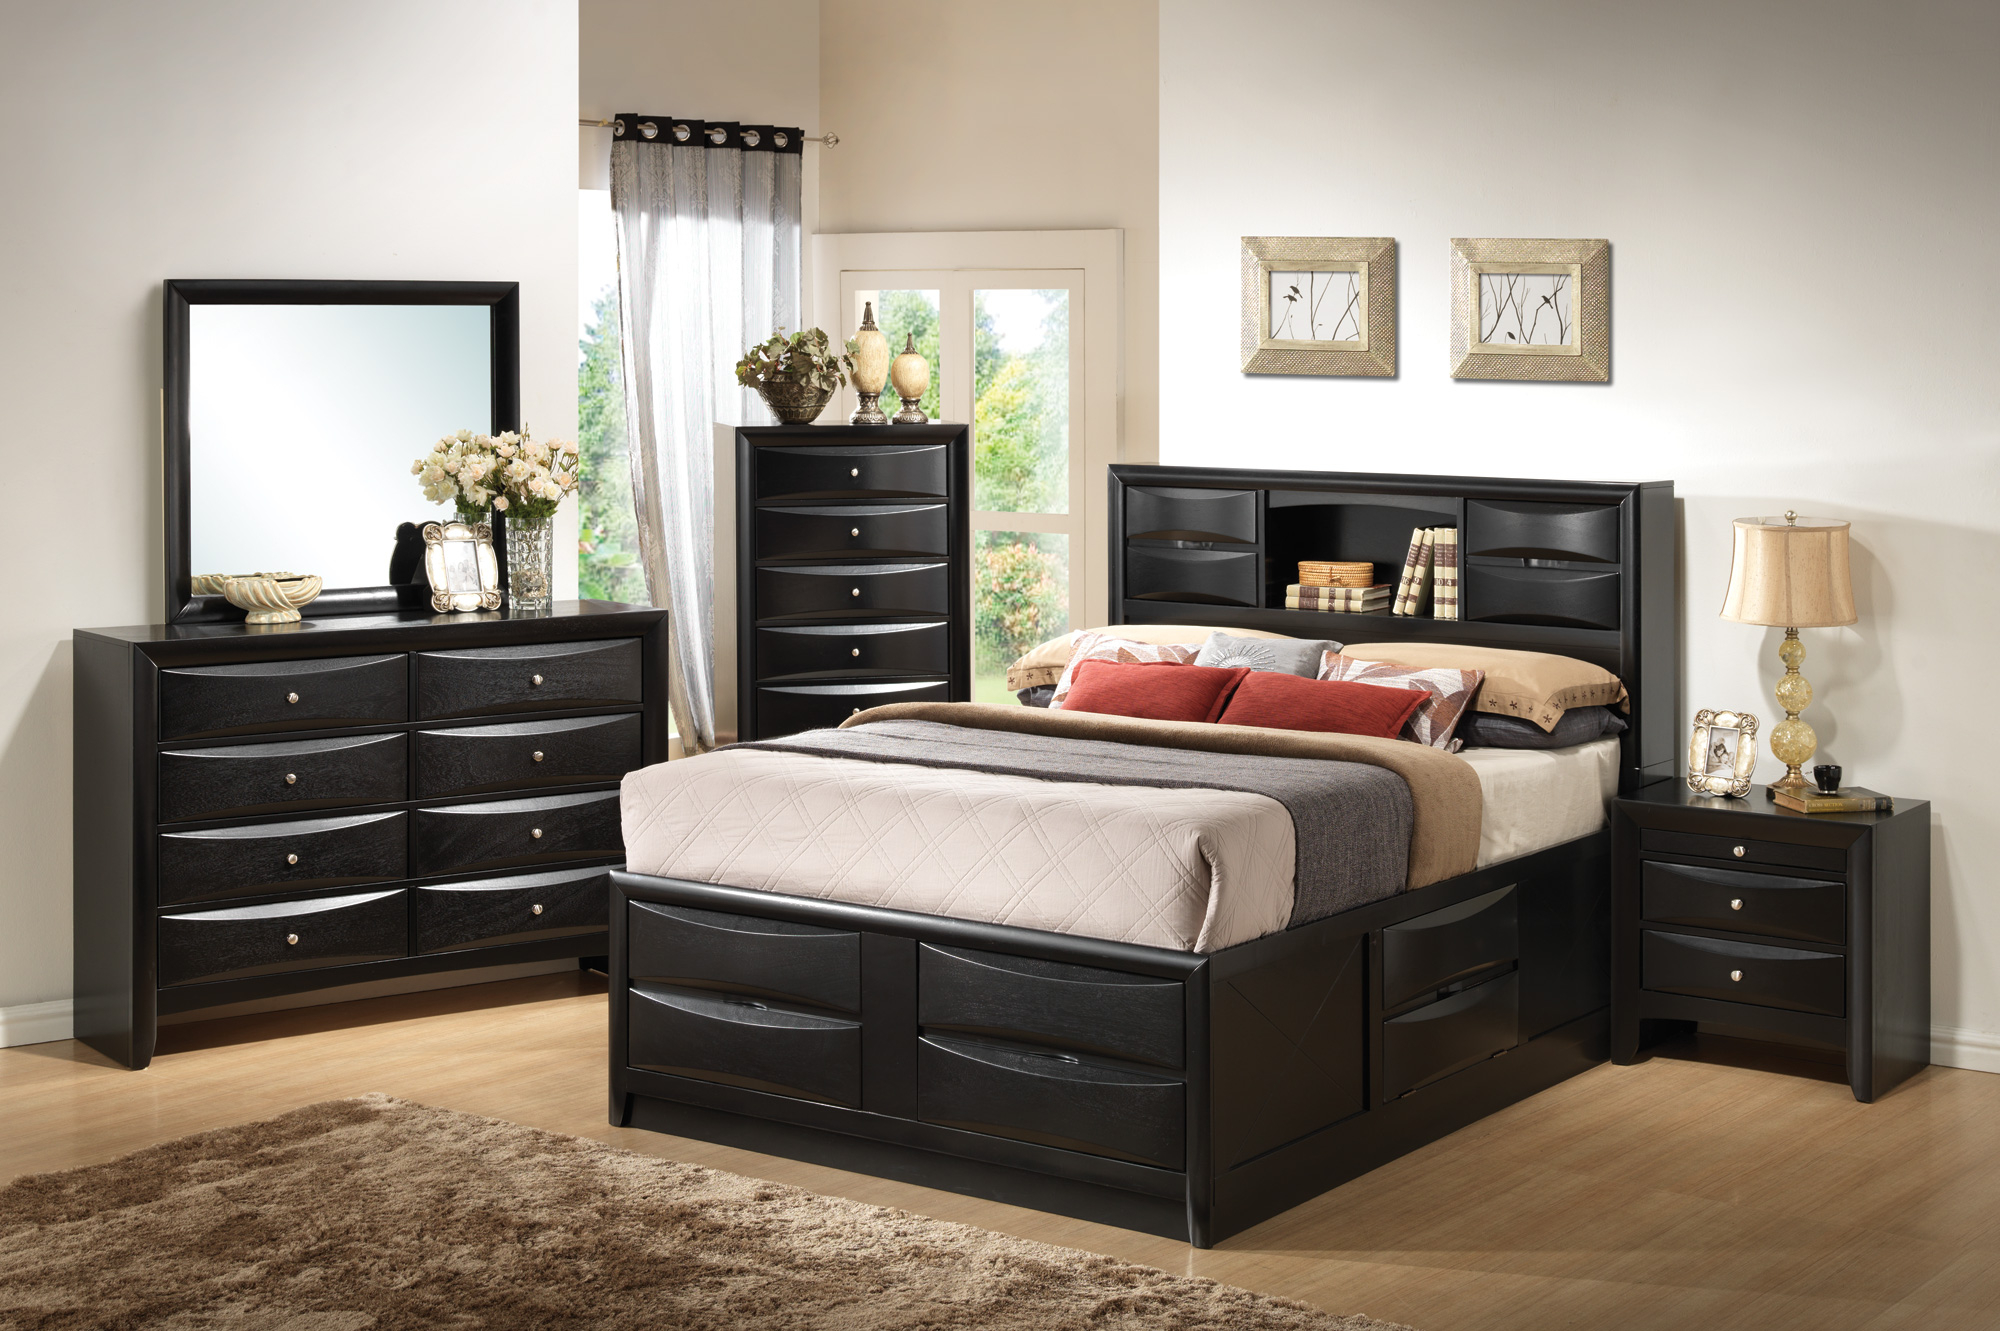 Coaster Briana Queen 5pc Storage Bedroom Set throughout Modern Bedroom Sets With Storage